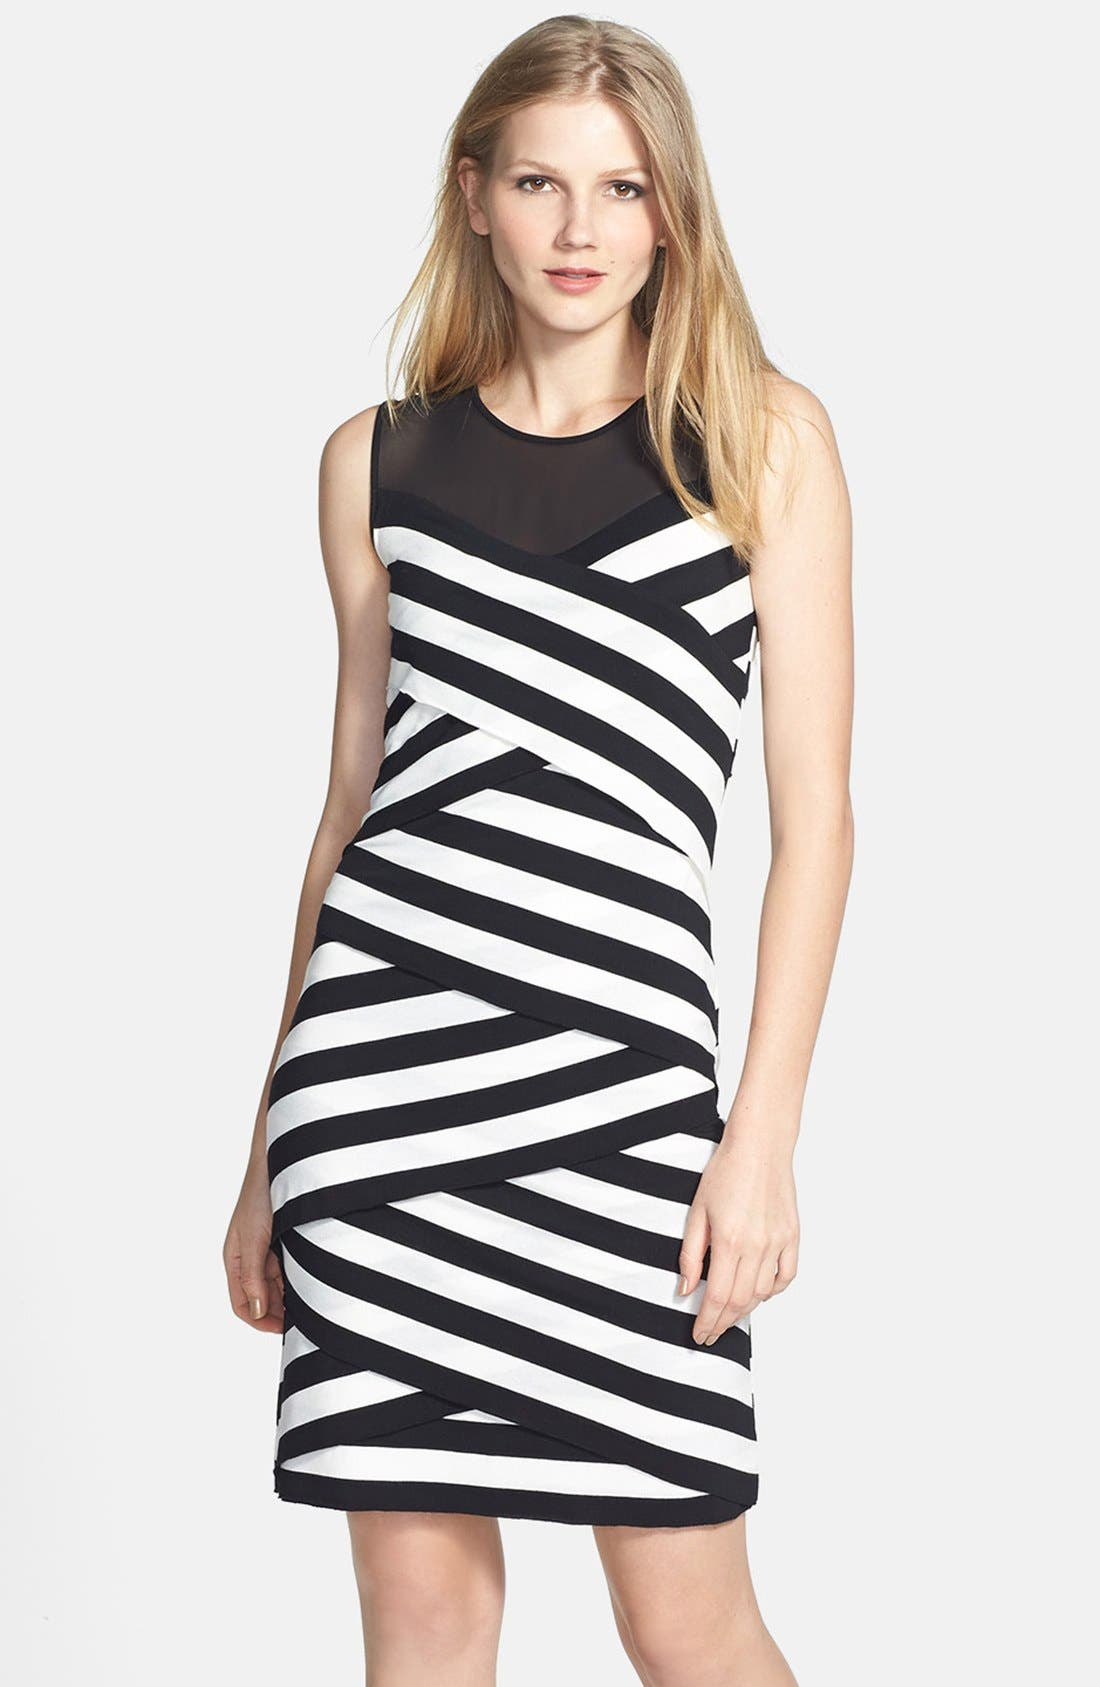 Alternate Image 1 Selected - Vince Camuto 'Café Stripe' Sheer Inset Zigzag Dress